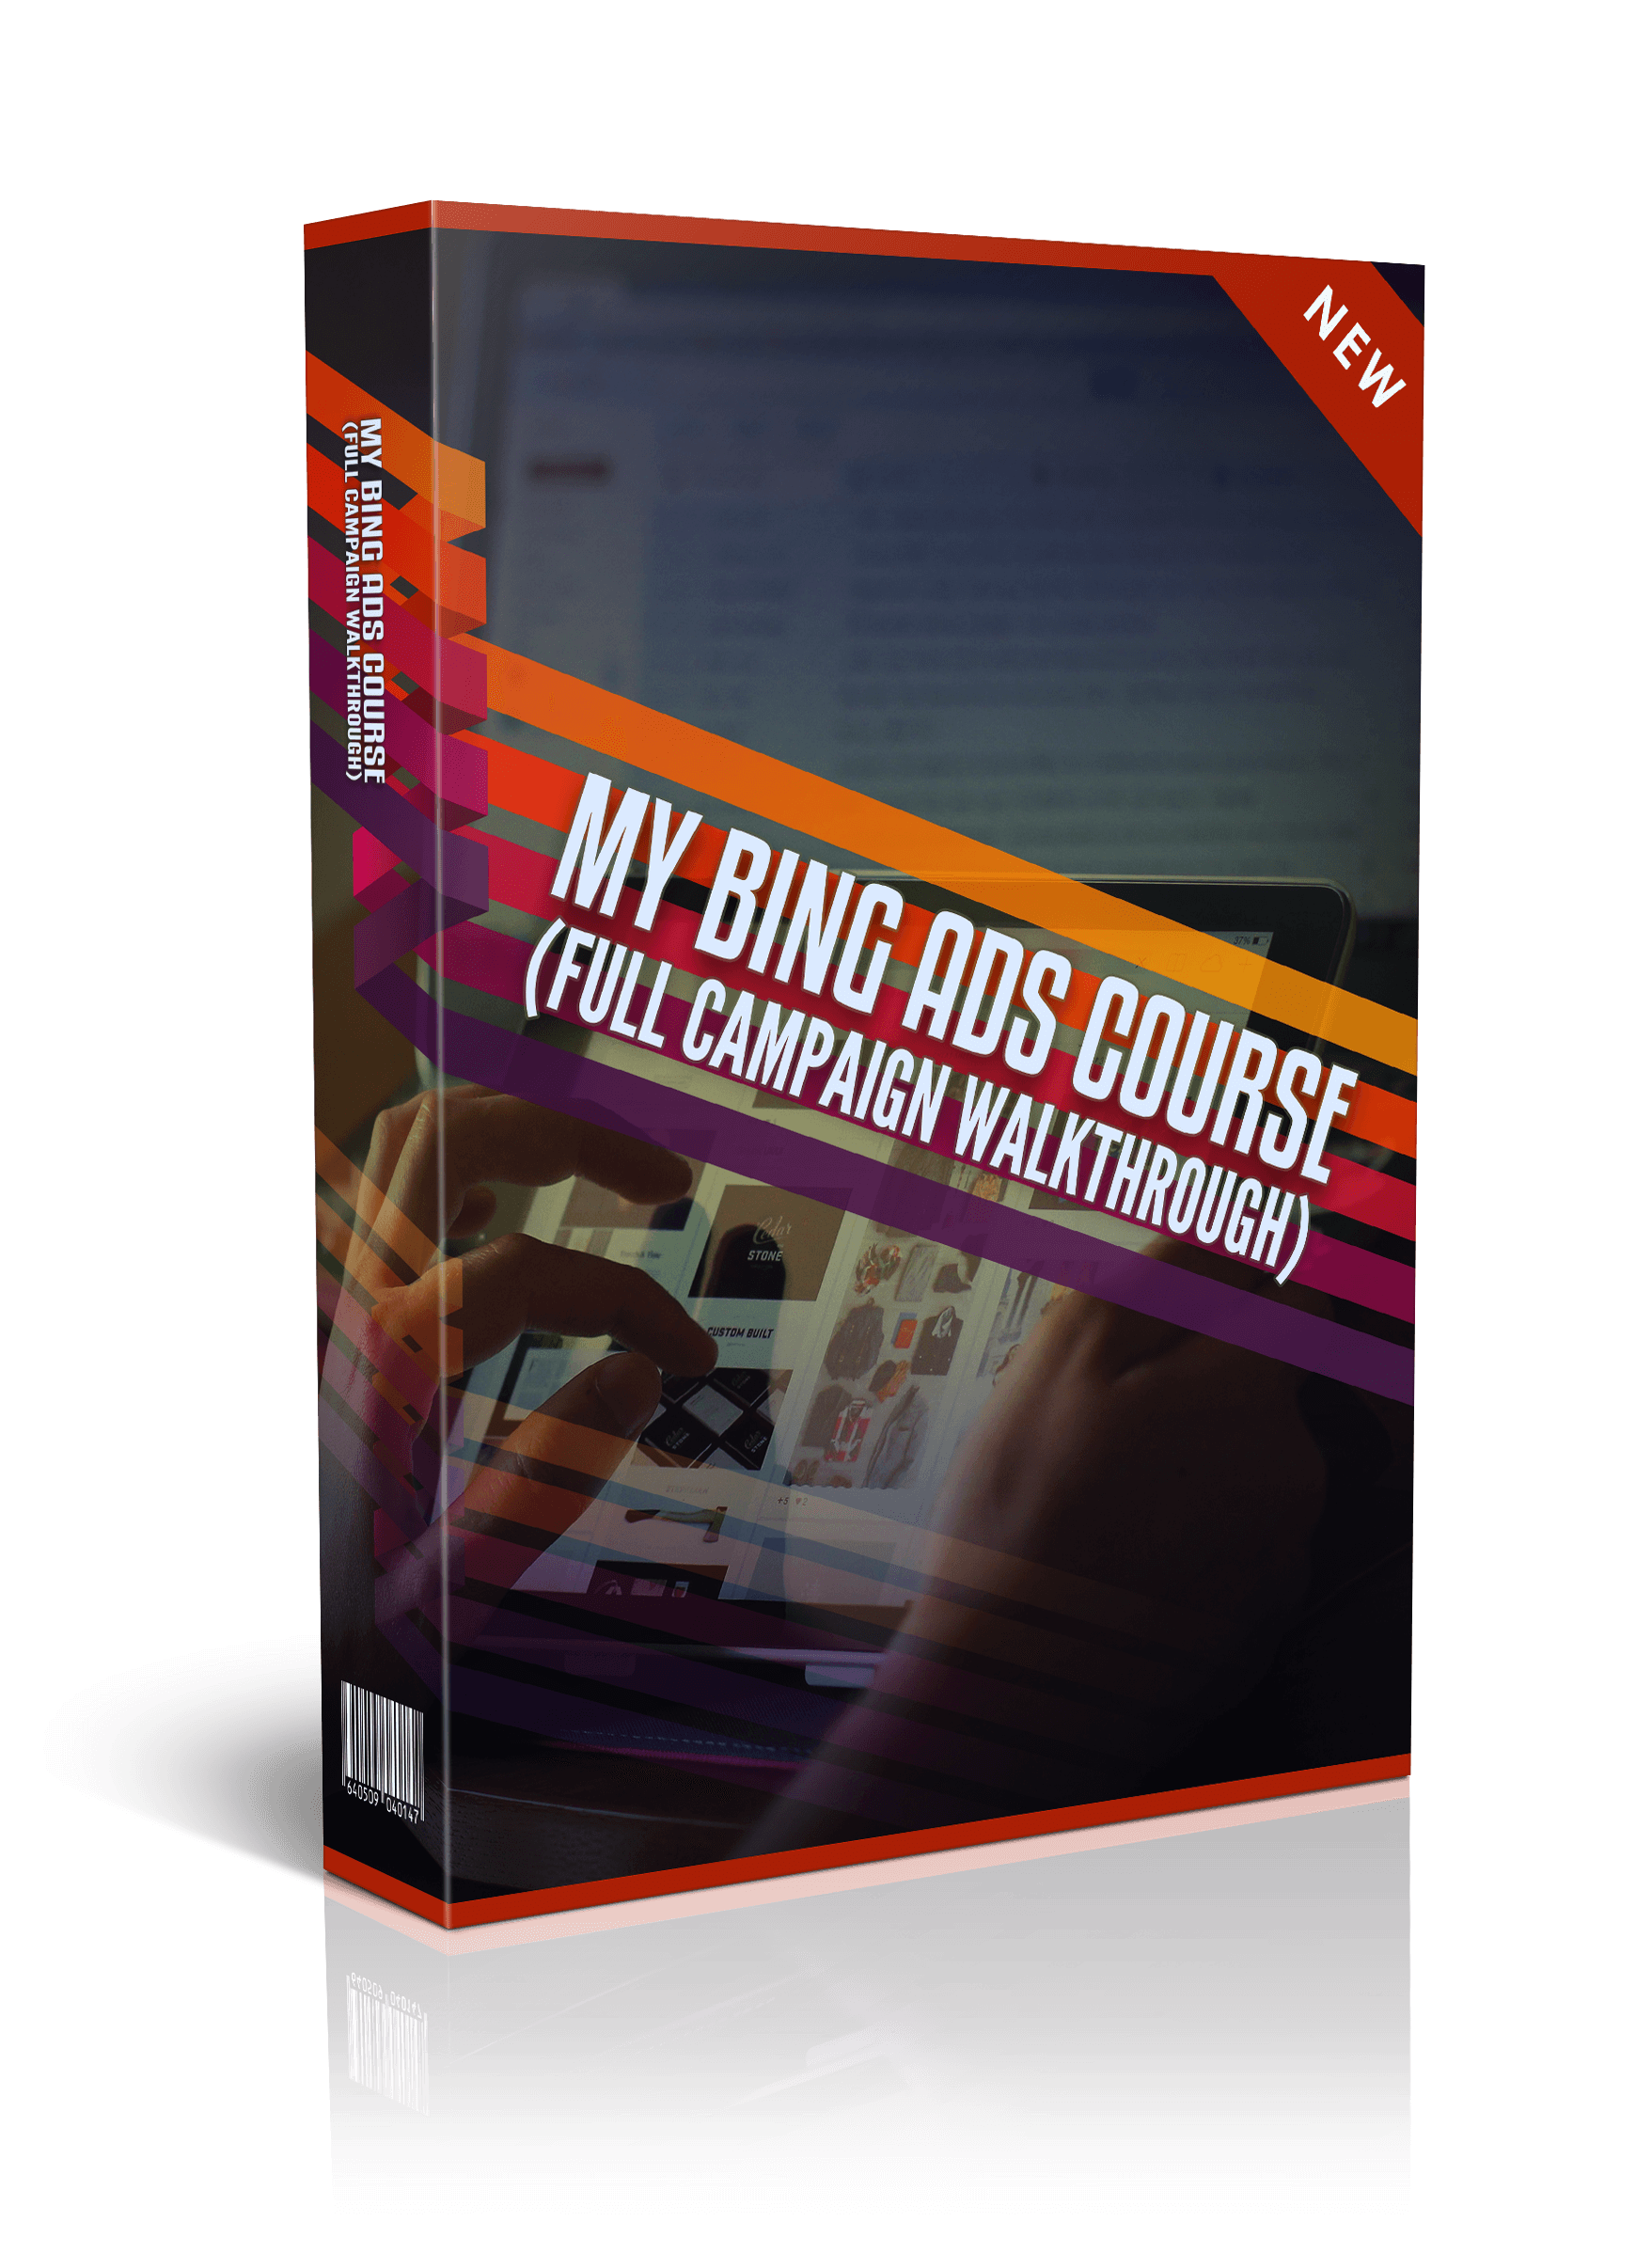 My-Bing-Ads-Course-_Full-Campaign-Walkthrough_